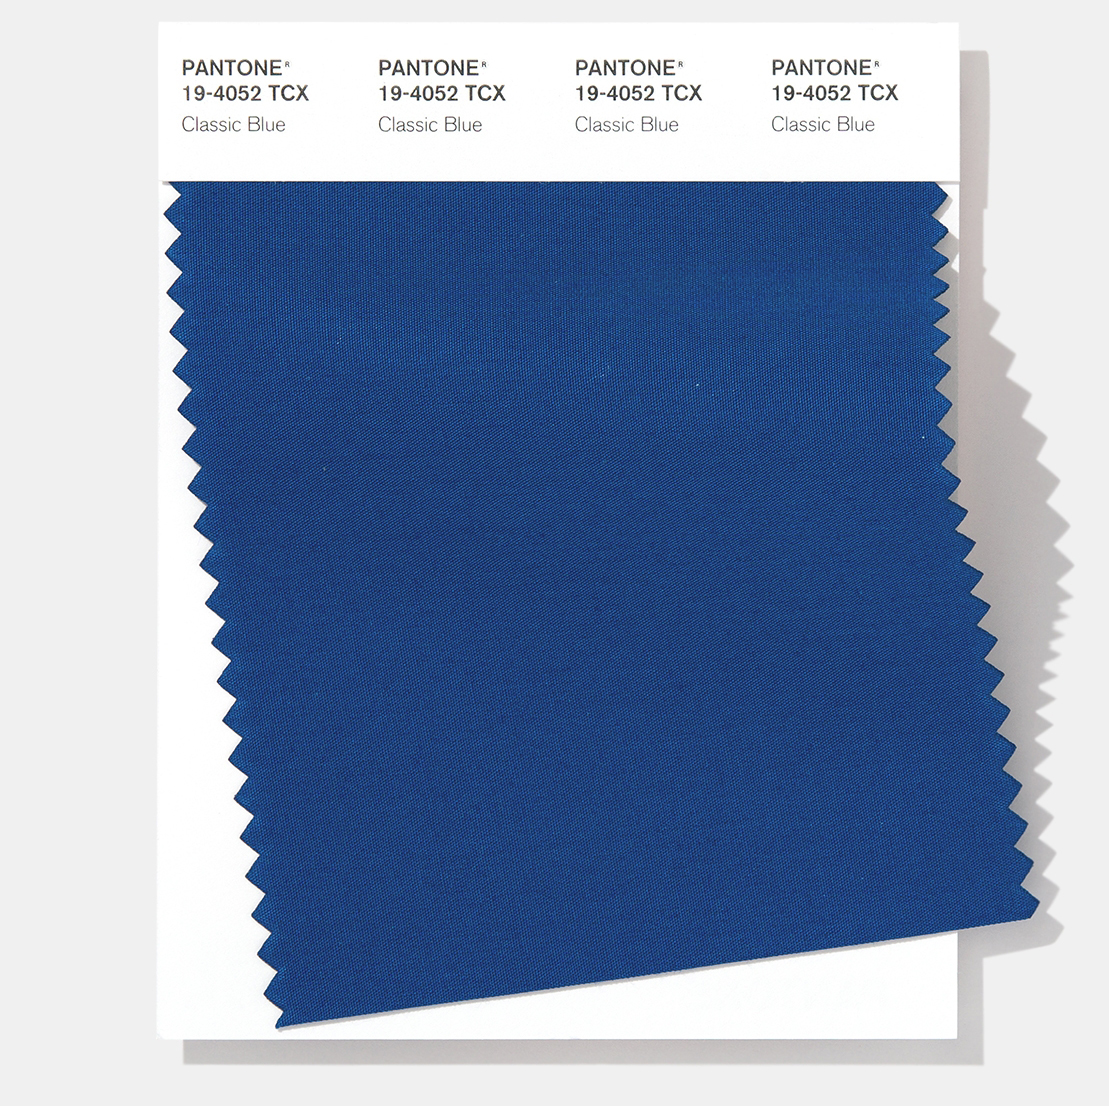 swcd-pantone-fashion-home-interiors-tcx-cotton-swatch-color-of-the-year-2020-classic-blue-19-4052